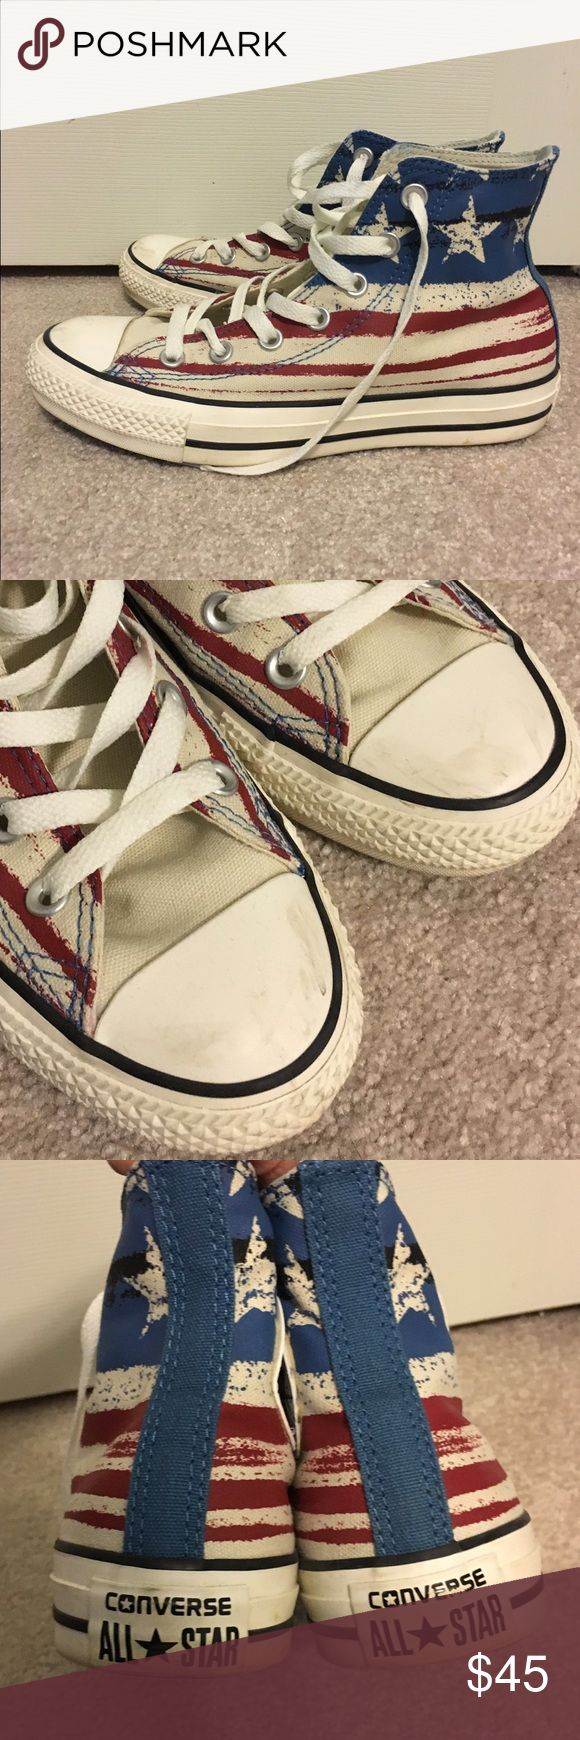 American flag hi-top converse Patriotic American flag print. Worn a couple times, sole is in great condition, minor scuffs on the front and some dirt on the back. Converse Shoes Sneakers